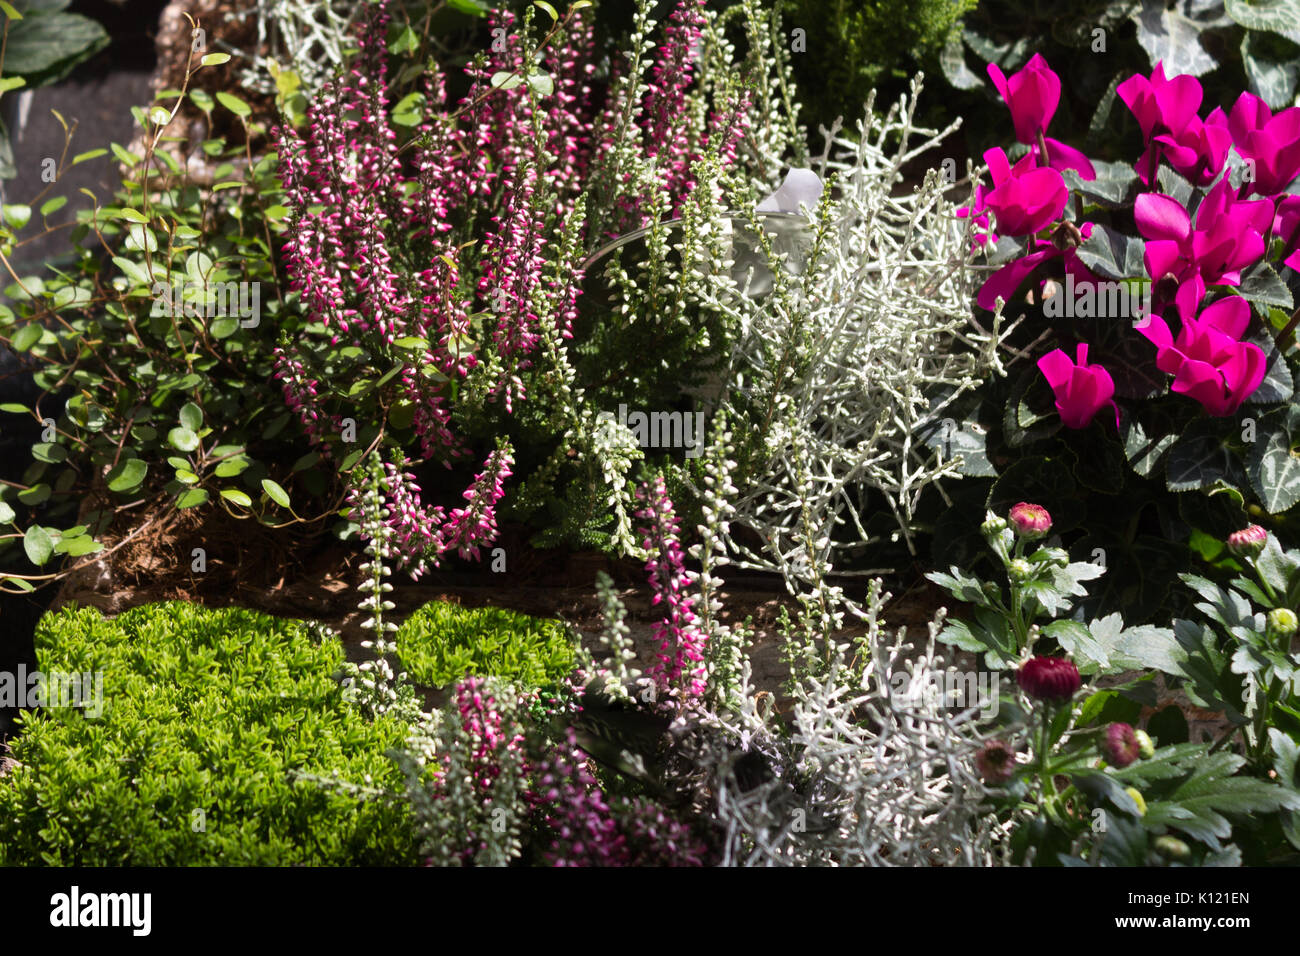 A garden with winter hardy erica plants - Ericaceae. - Stock Image